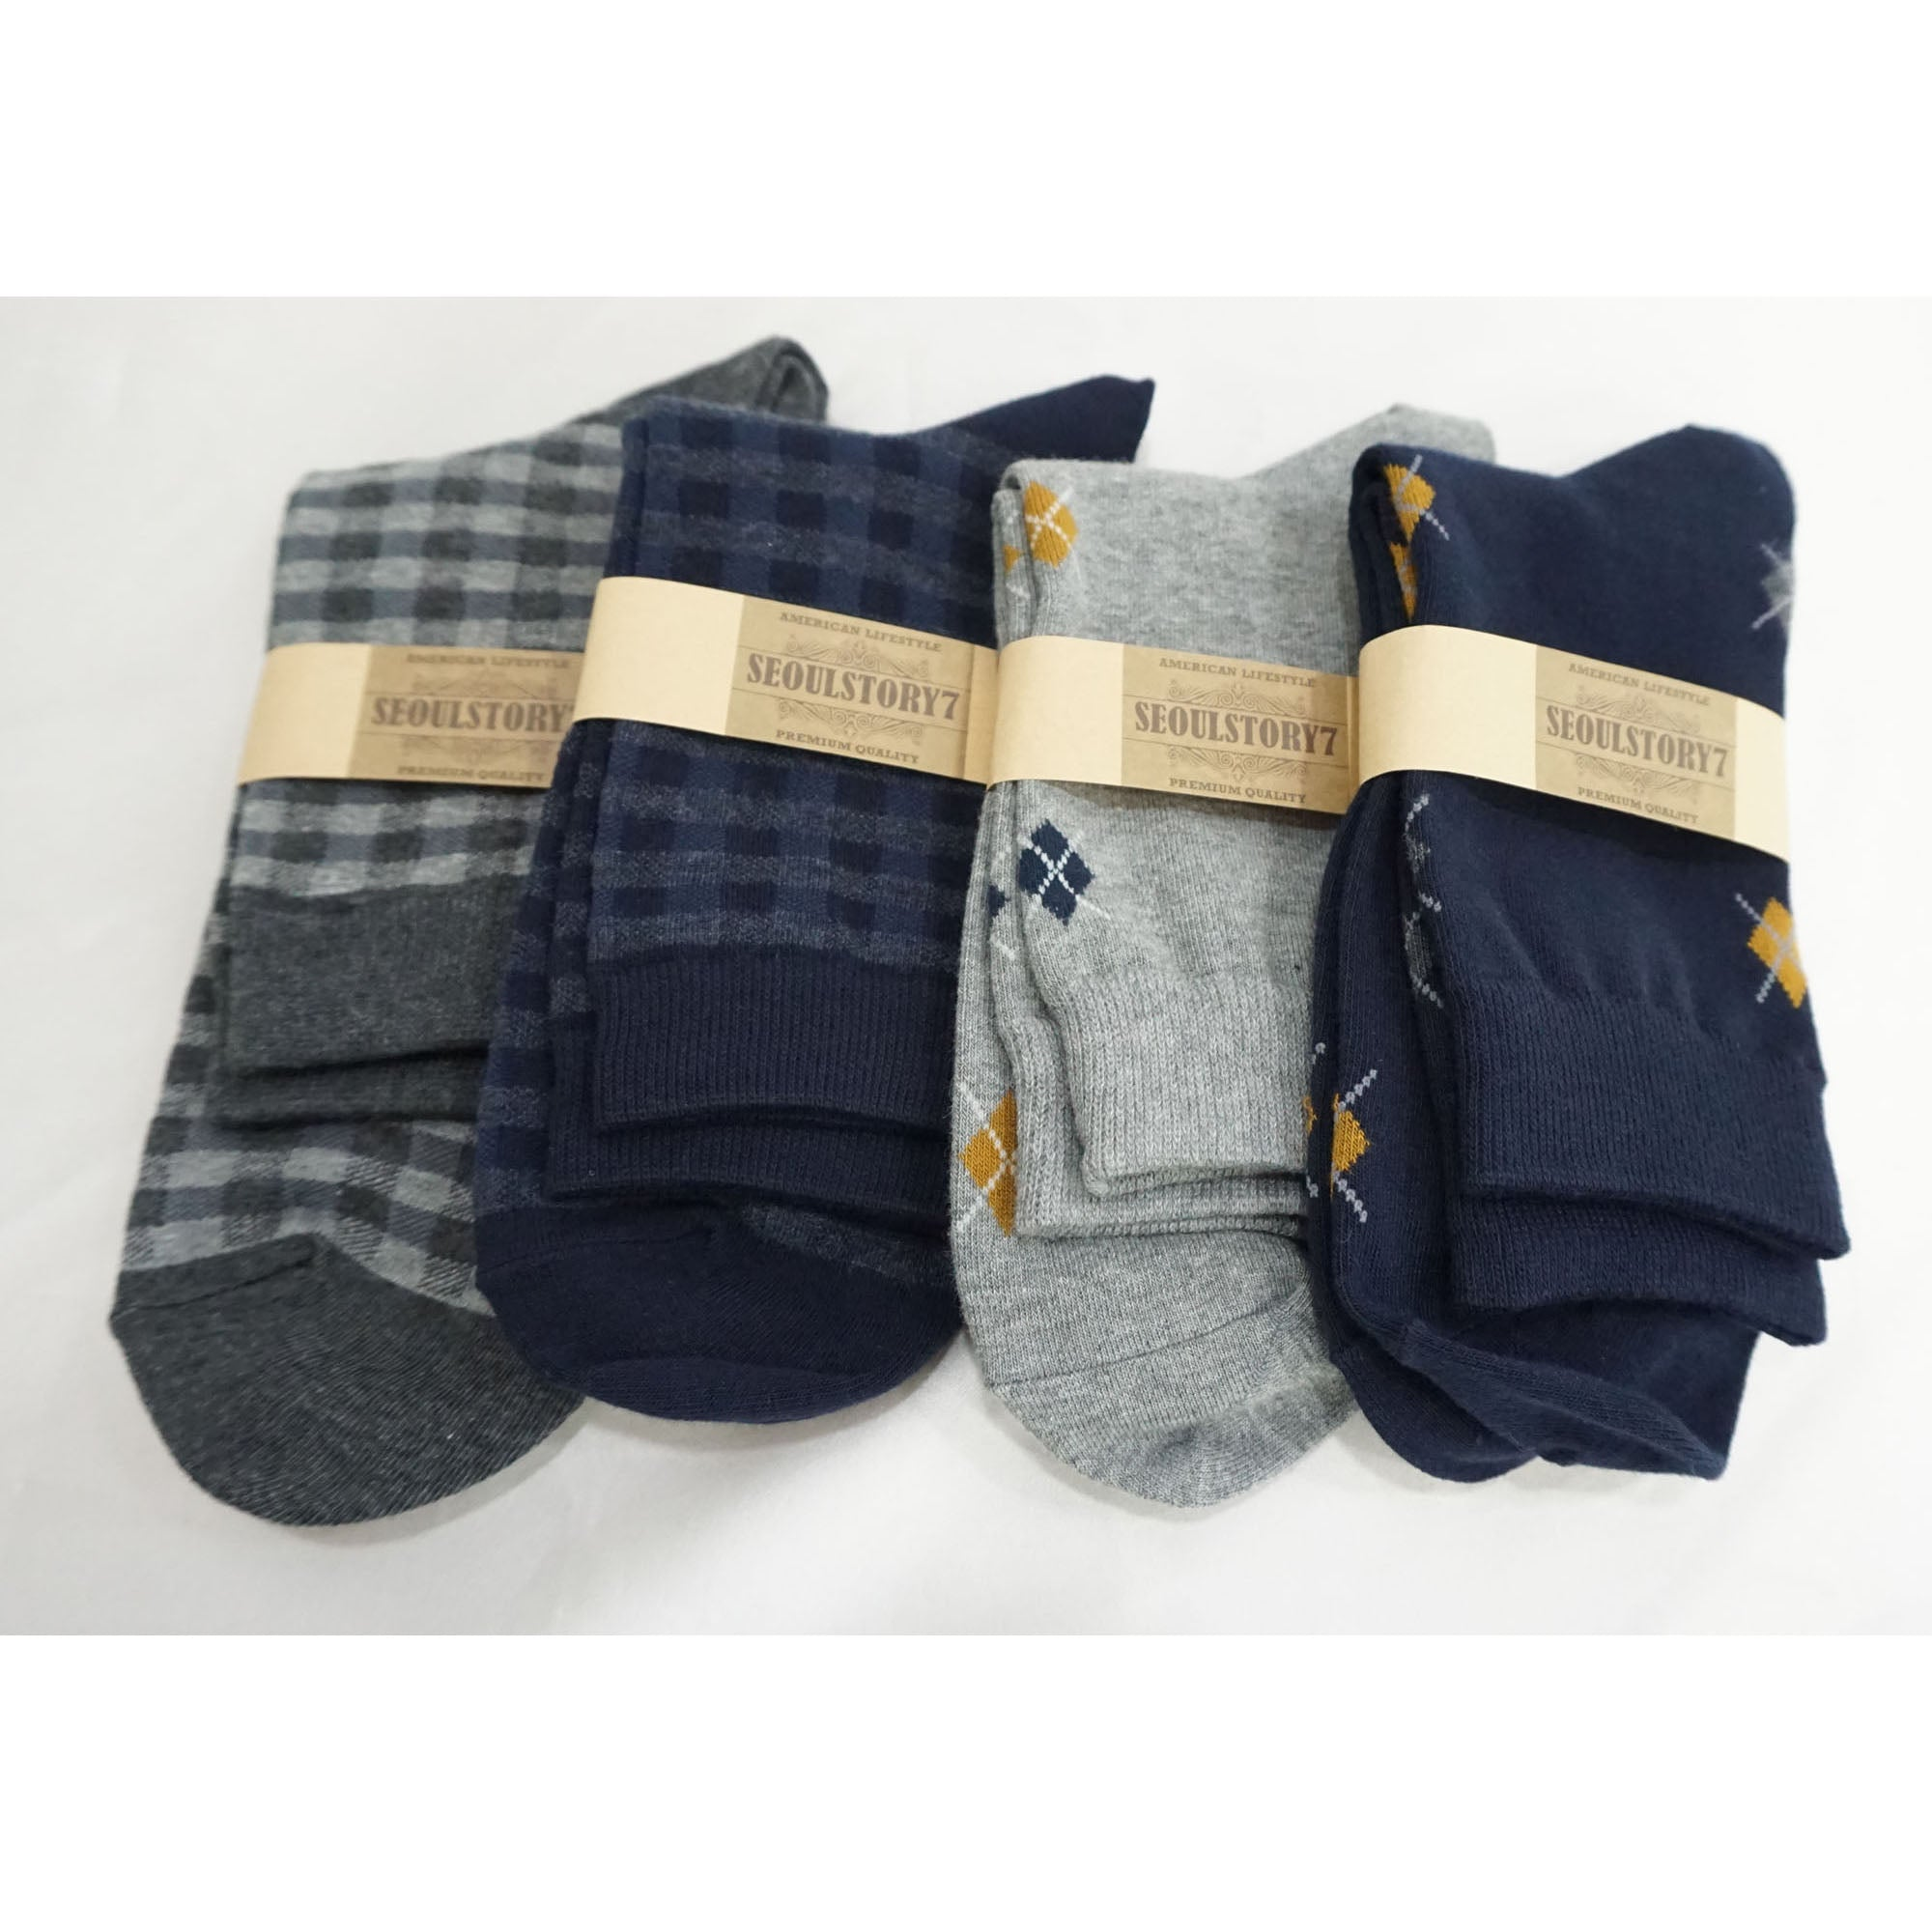 4Pack Men's Casual Cotton Patterned Socks Check and Small Argyle